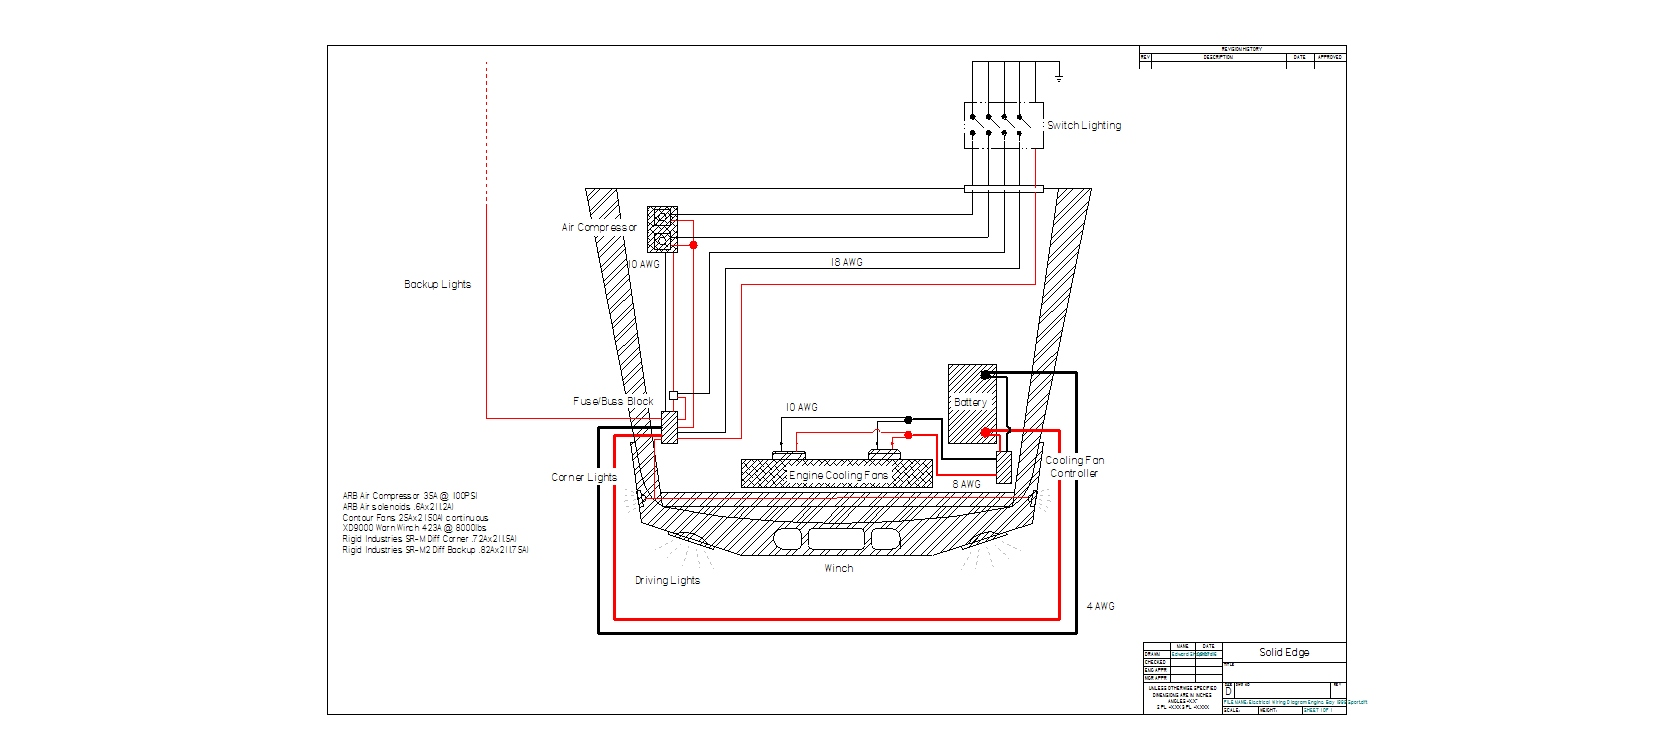 Hotsy Wiring Diagram Data Ace Schematic Simple Site